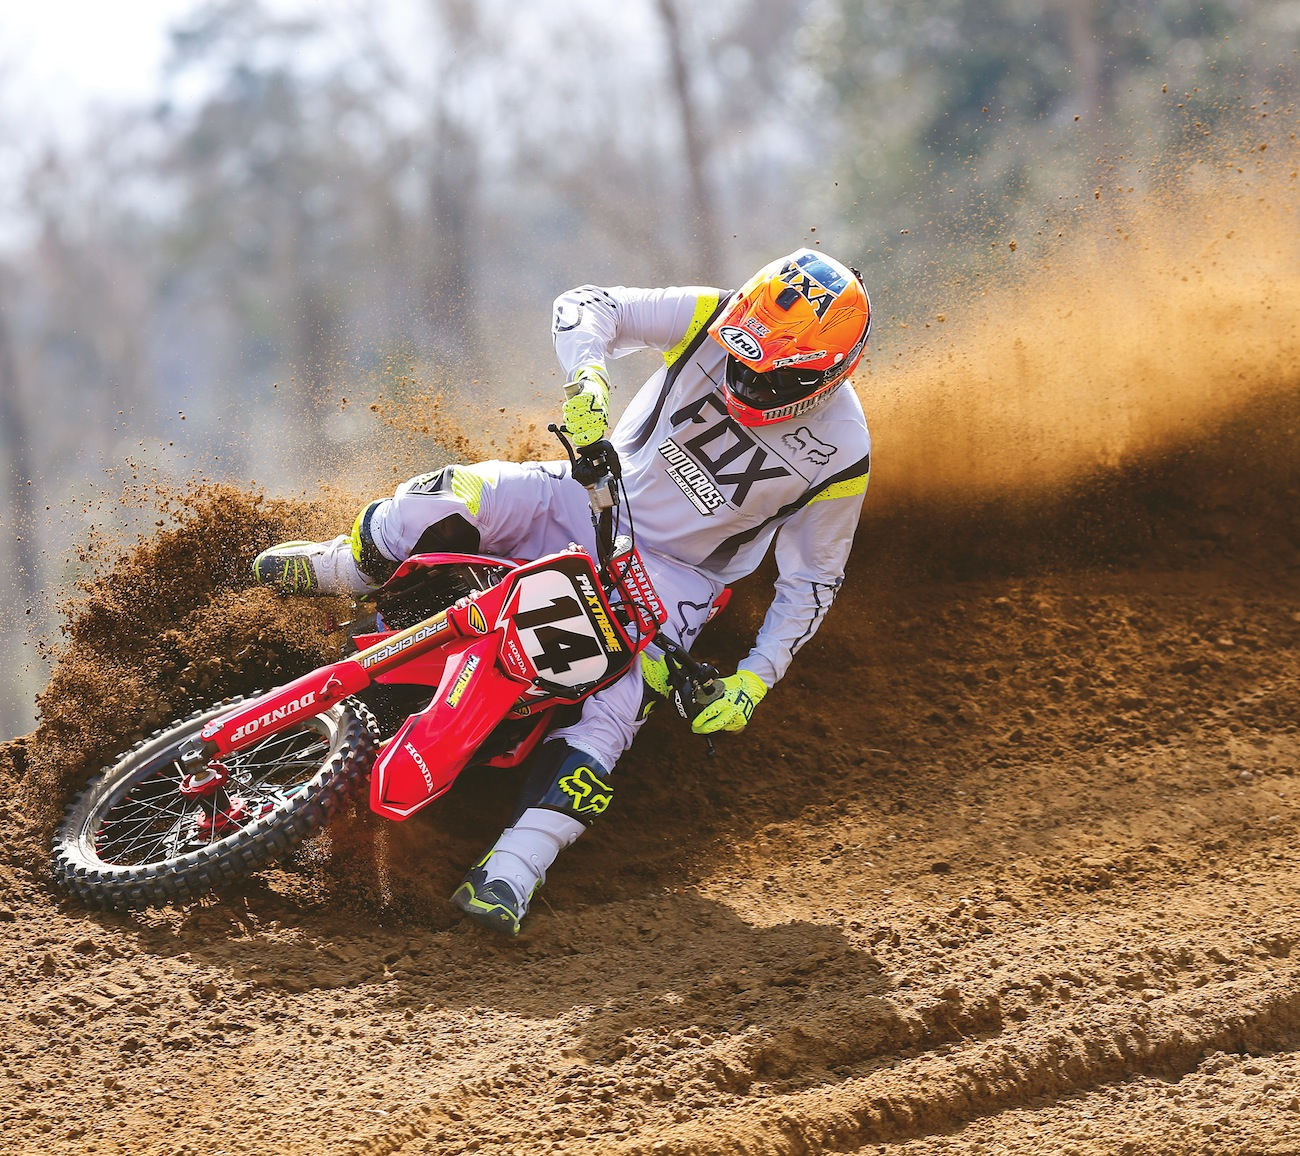 Mxa Tests A 53000 Honda Crf250 Project Bike Motocross Action Hrc Pit Aftermarket Mods If Youre Interested In Spending Thousands Of Dollars Hop Up Parts All You Need To Do Is Embrace Holgados Habits